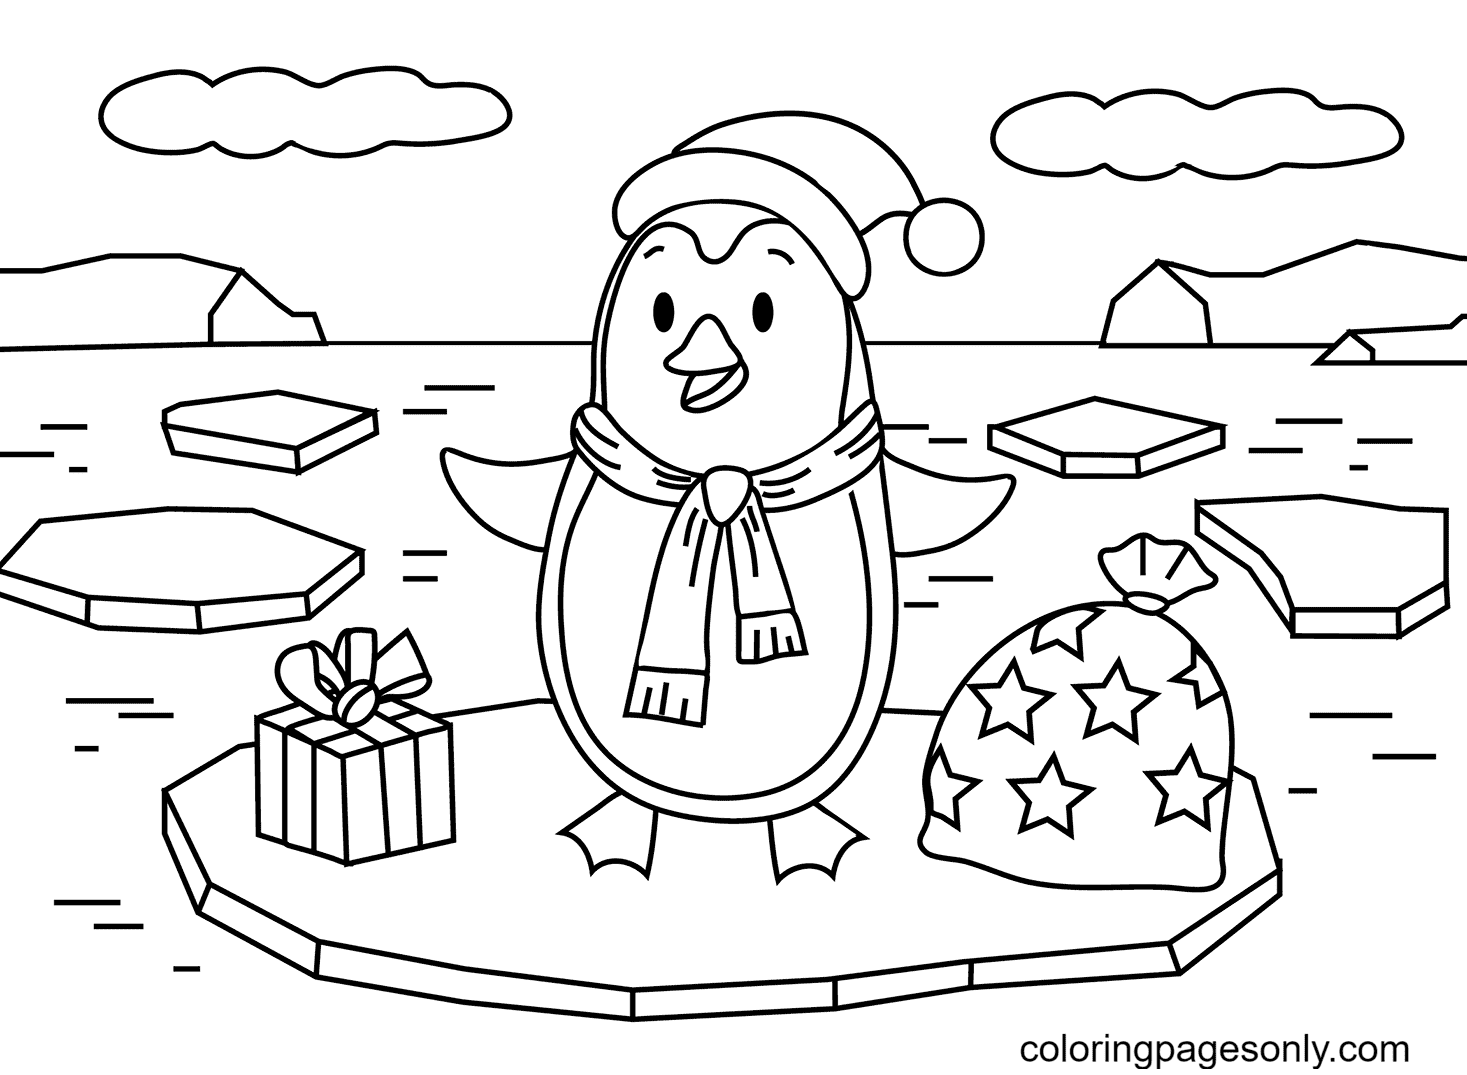 Printable Christmas Penguin Coloring Page